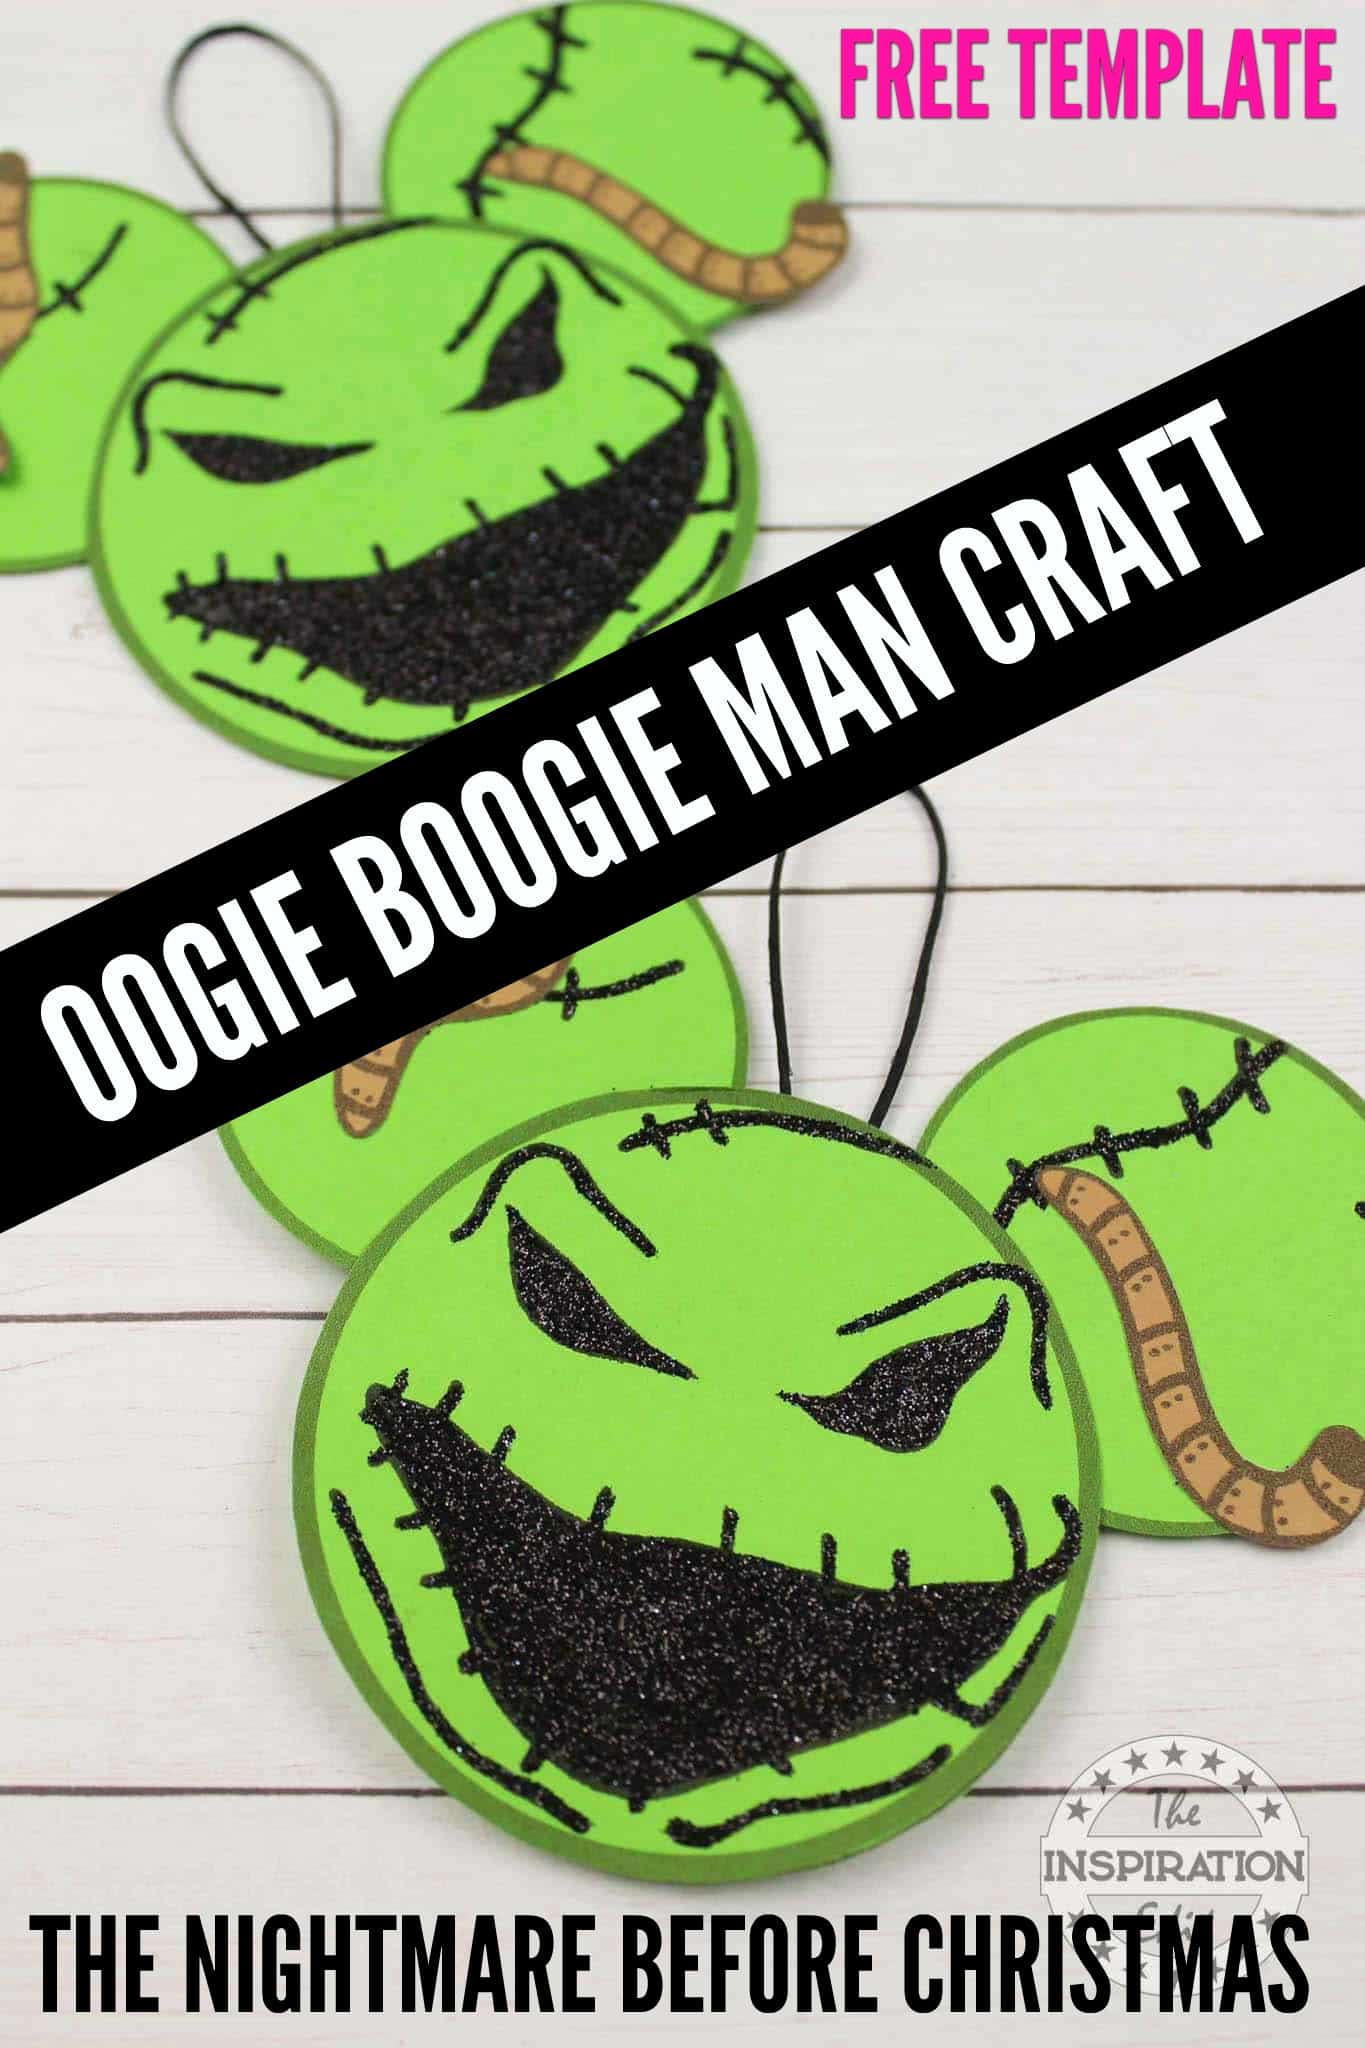 OOGIE BOOGIE MAN CRAFT FROM THE NIGHTMARE BEFORE CHRISTMAS